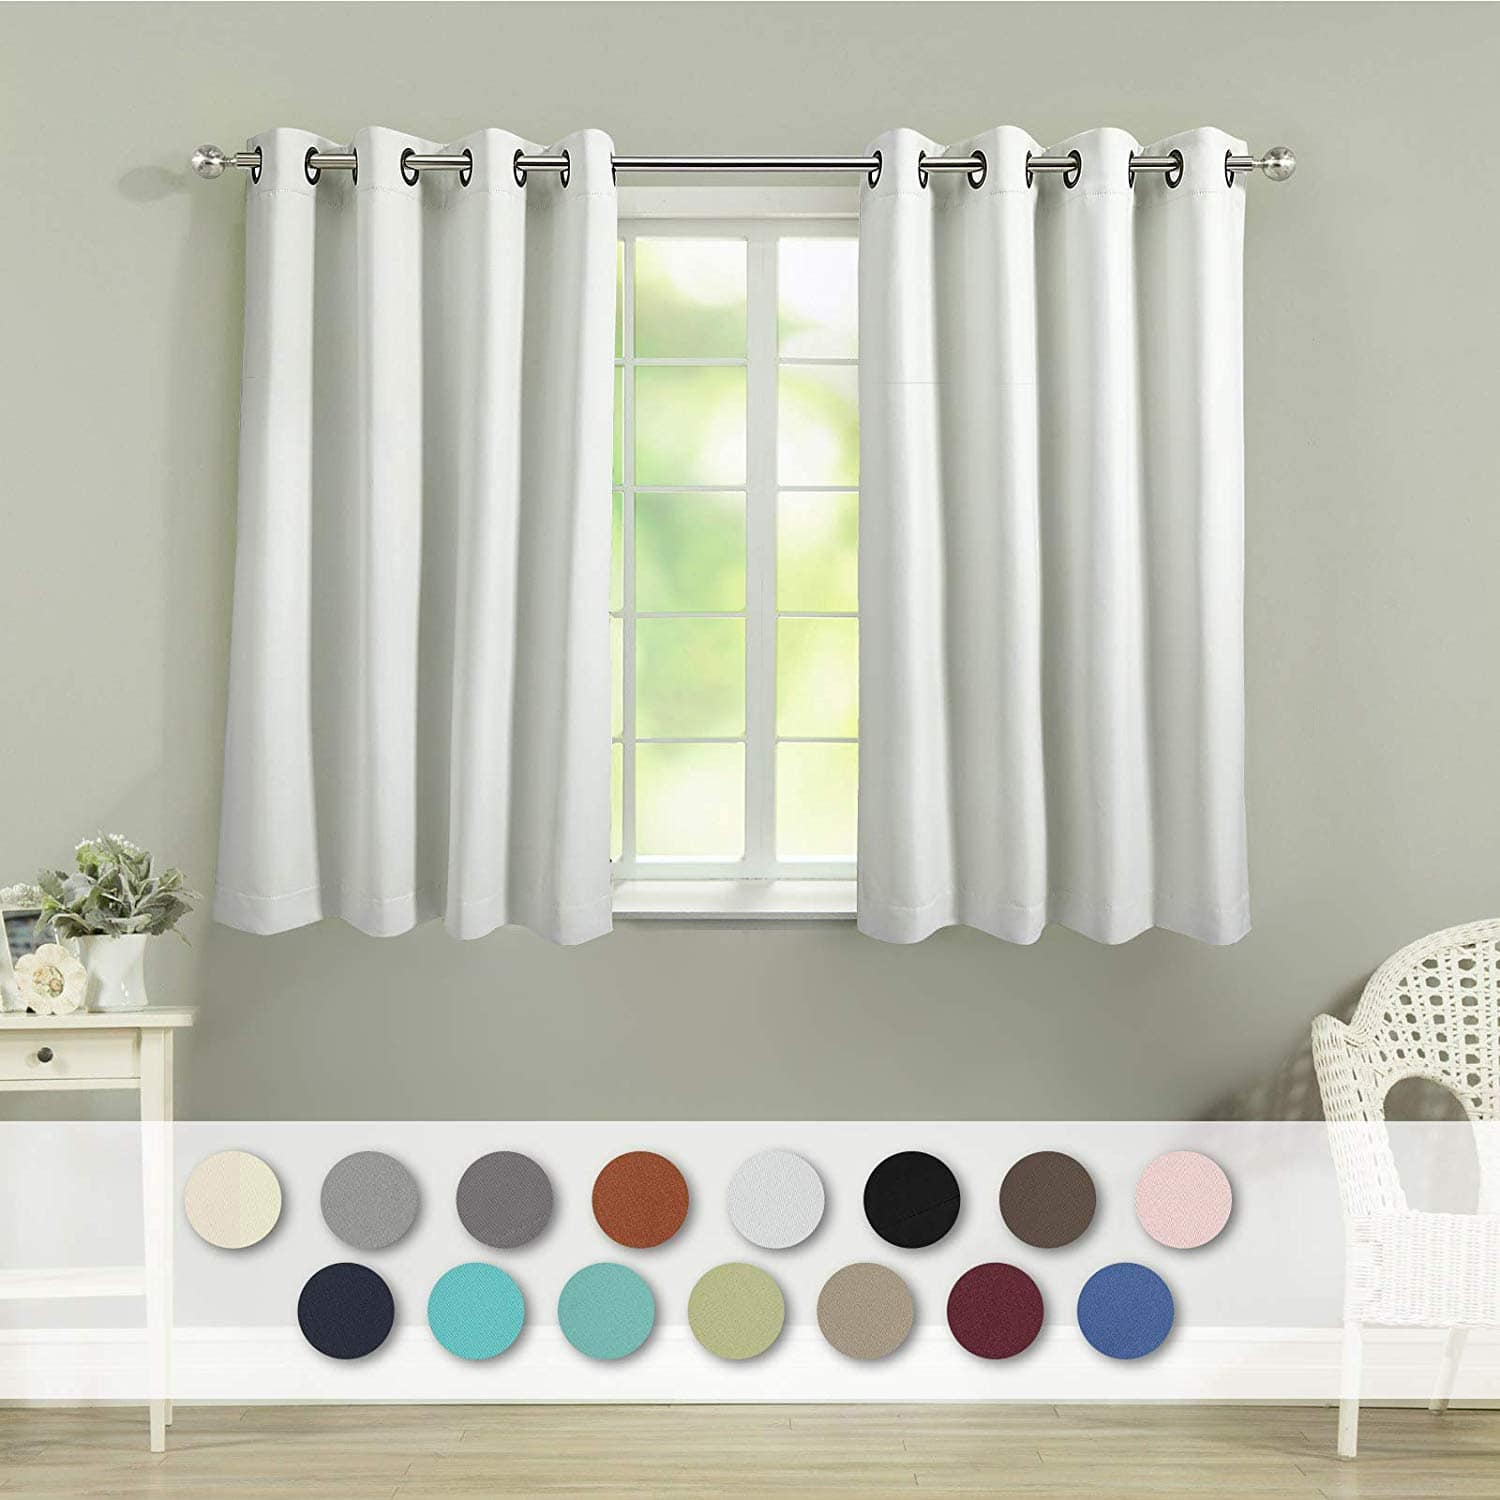 VEEYOO Thermal Insulated Blackout Curtains (2 Panels, 52\